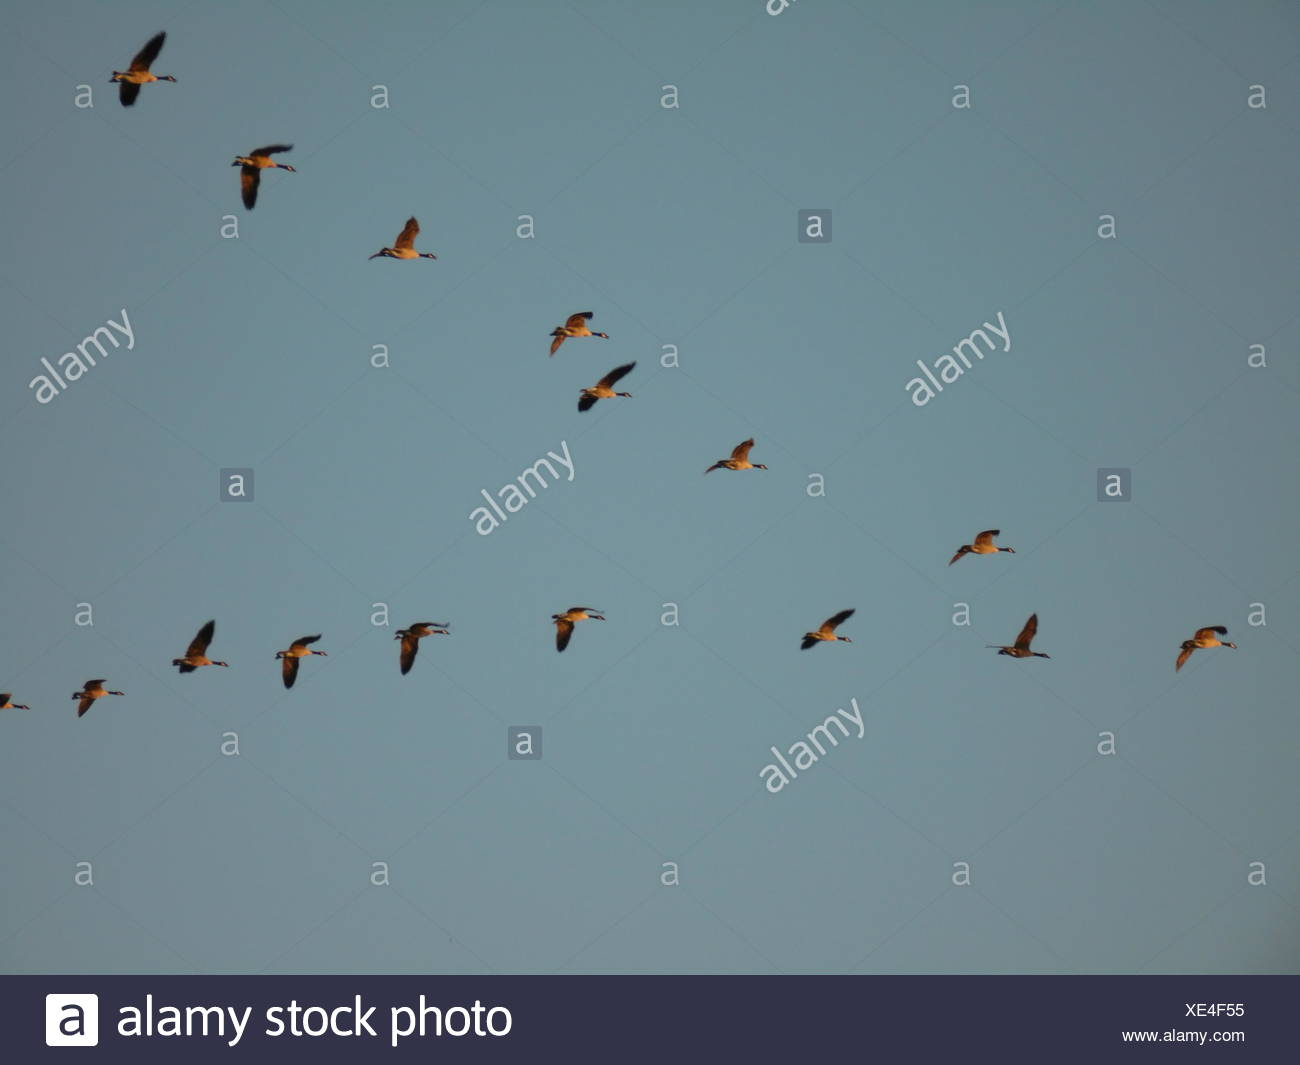 birds flying in v formation stockfotos birds flying in v formation bilder alamy. Black Bedroom Furniture Sets. Home Design Ideas